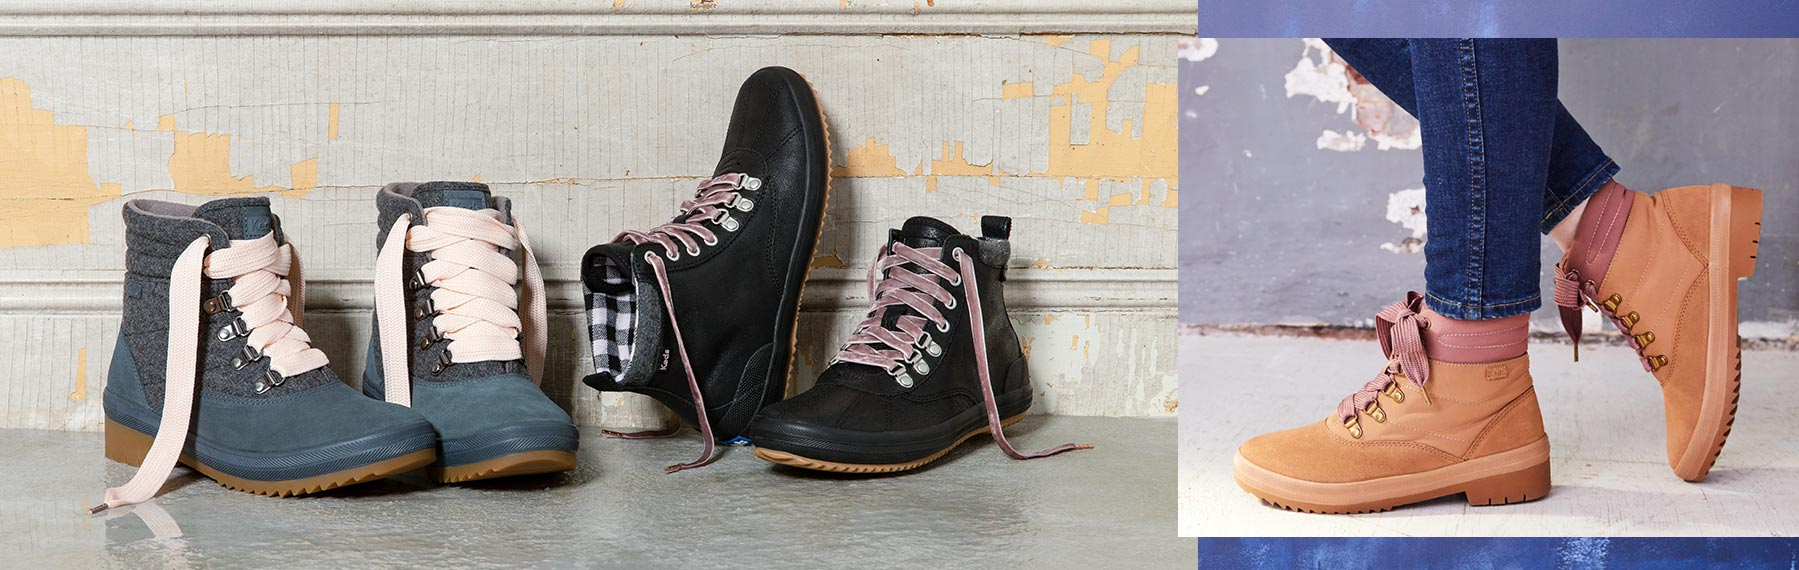 A pair of blue, black and brown boots that have the comfort of a sneaker.